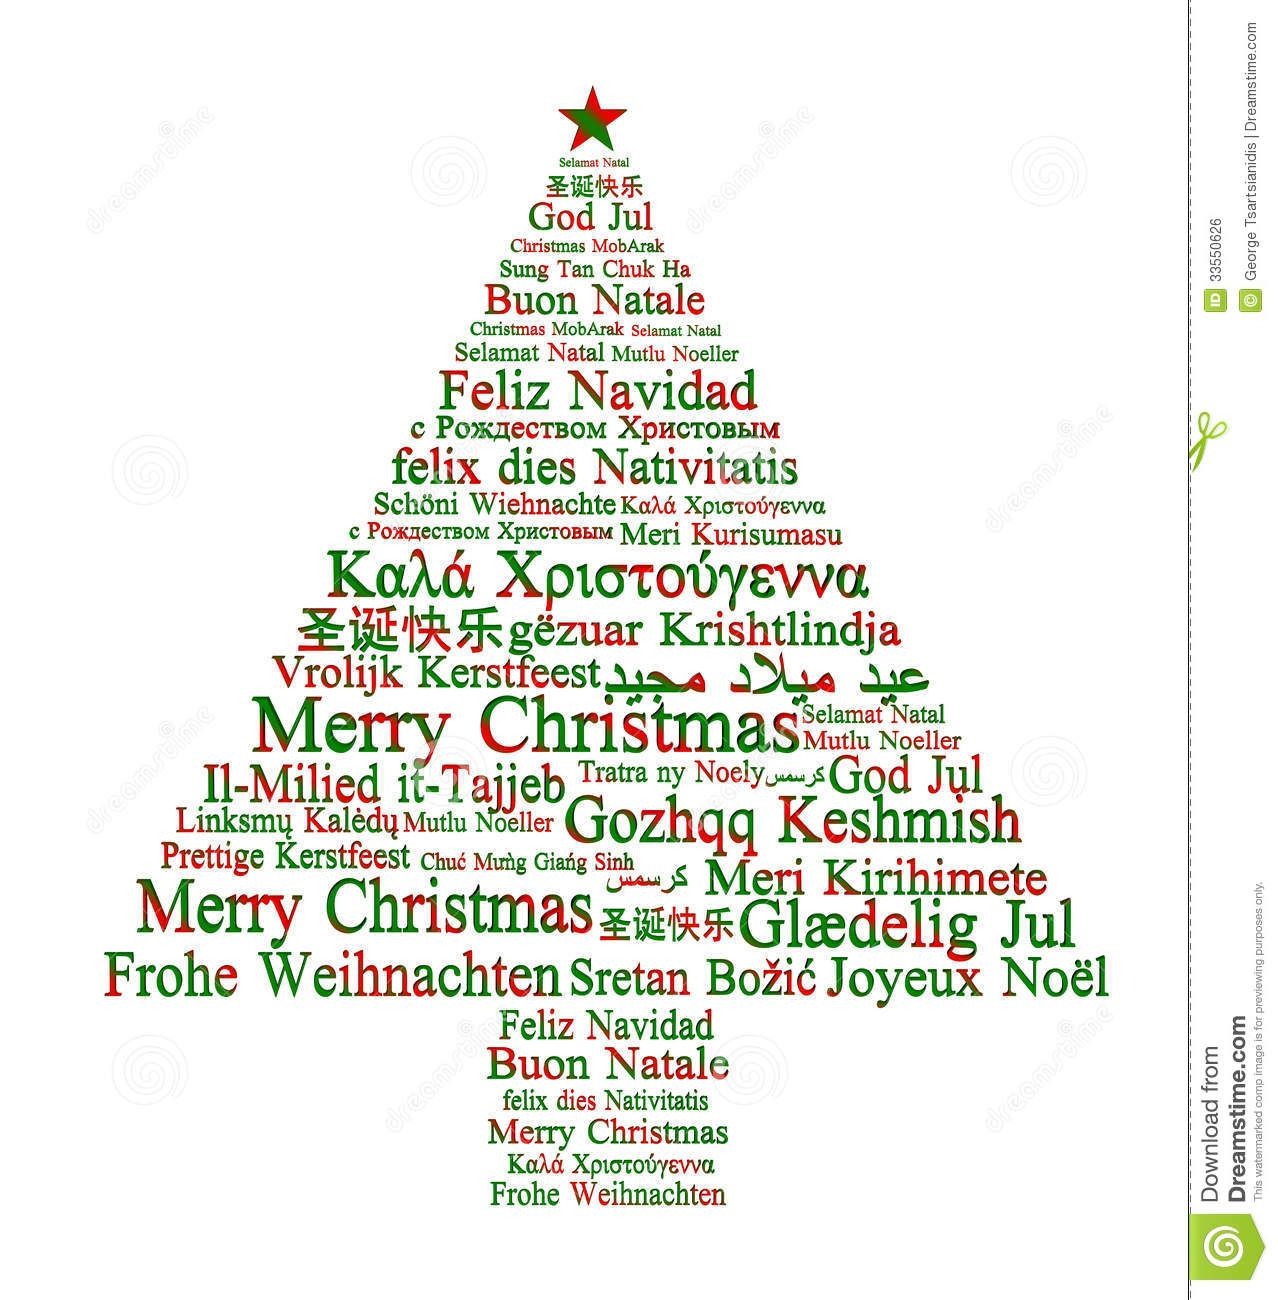 Merry Christmas Different Languages | Merry Christmas | Pinterest ...